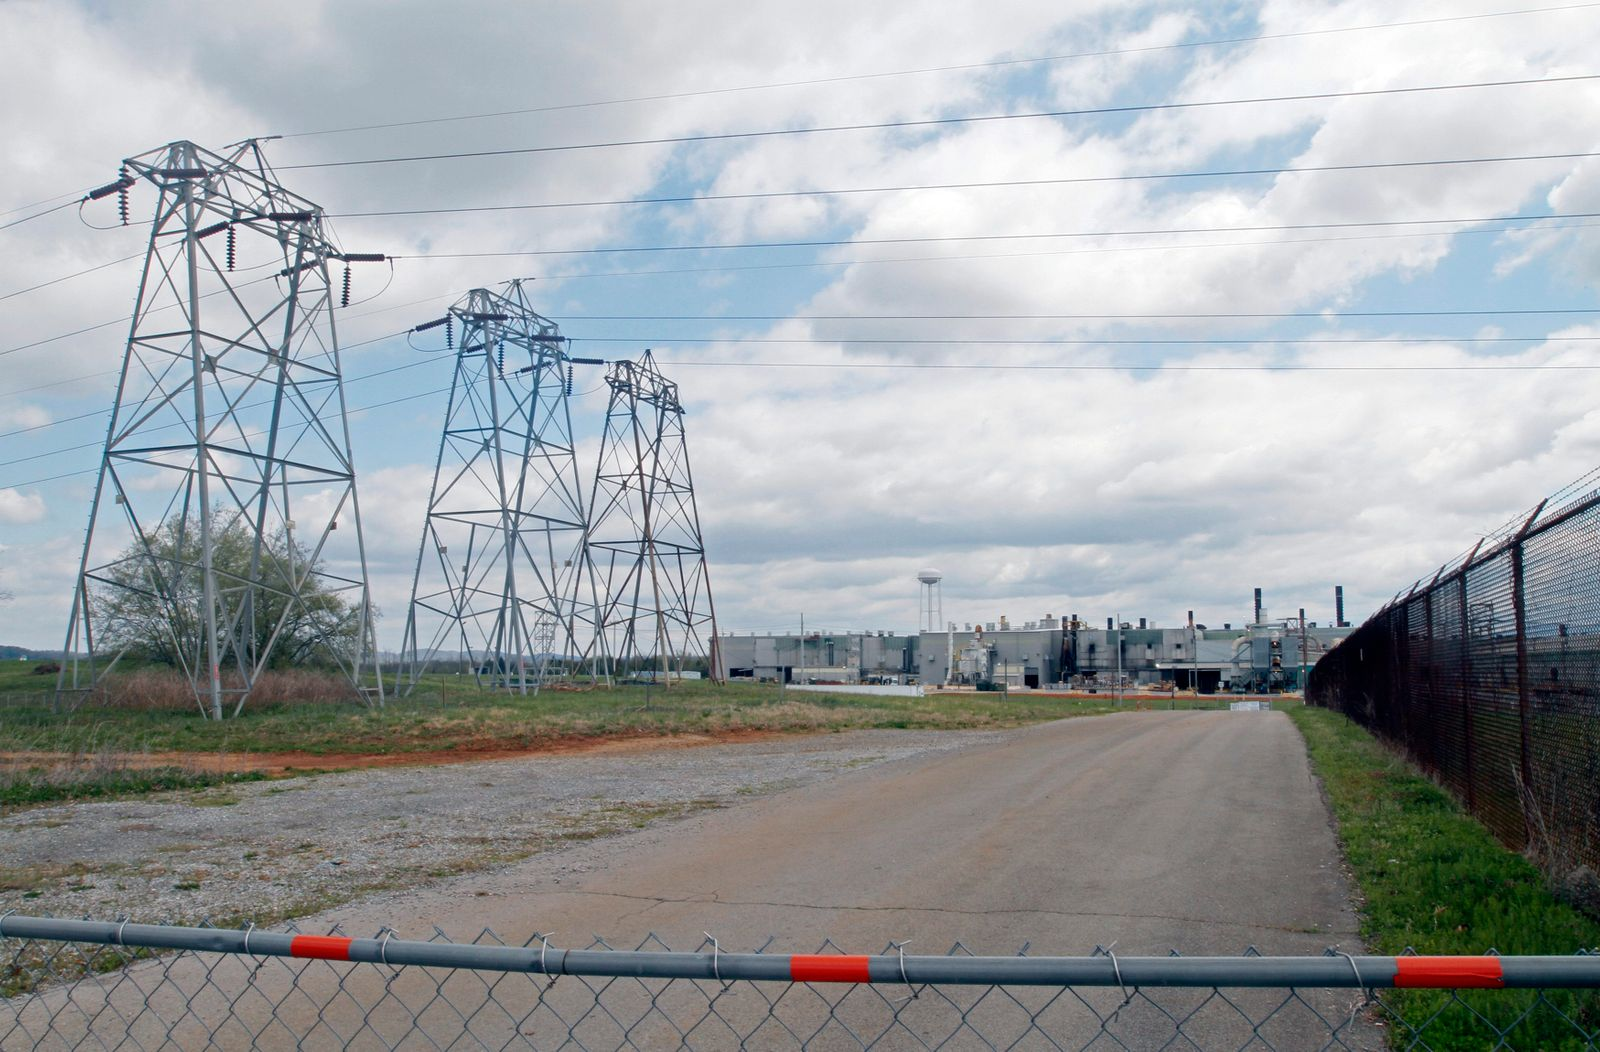 Power lines and large buildings are shown in the view of the Alcoa Aluminium plant